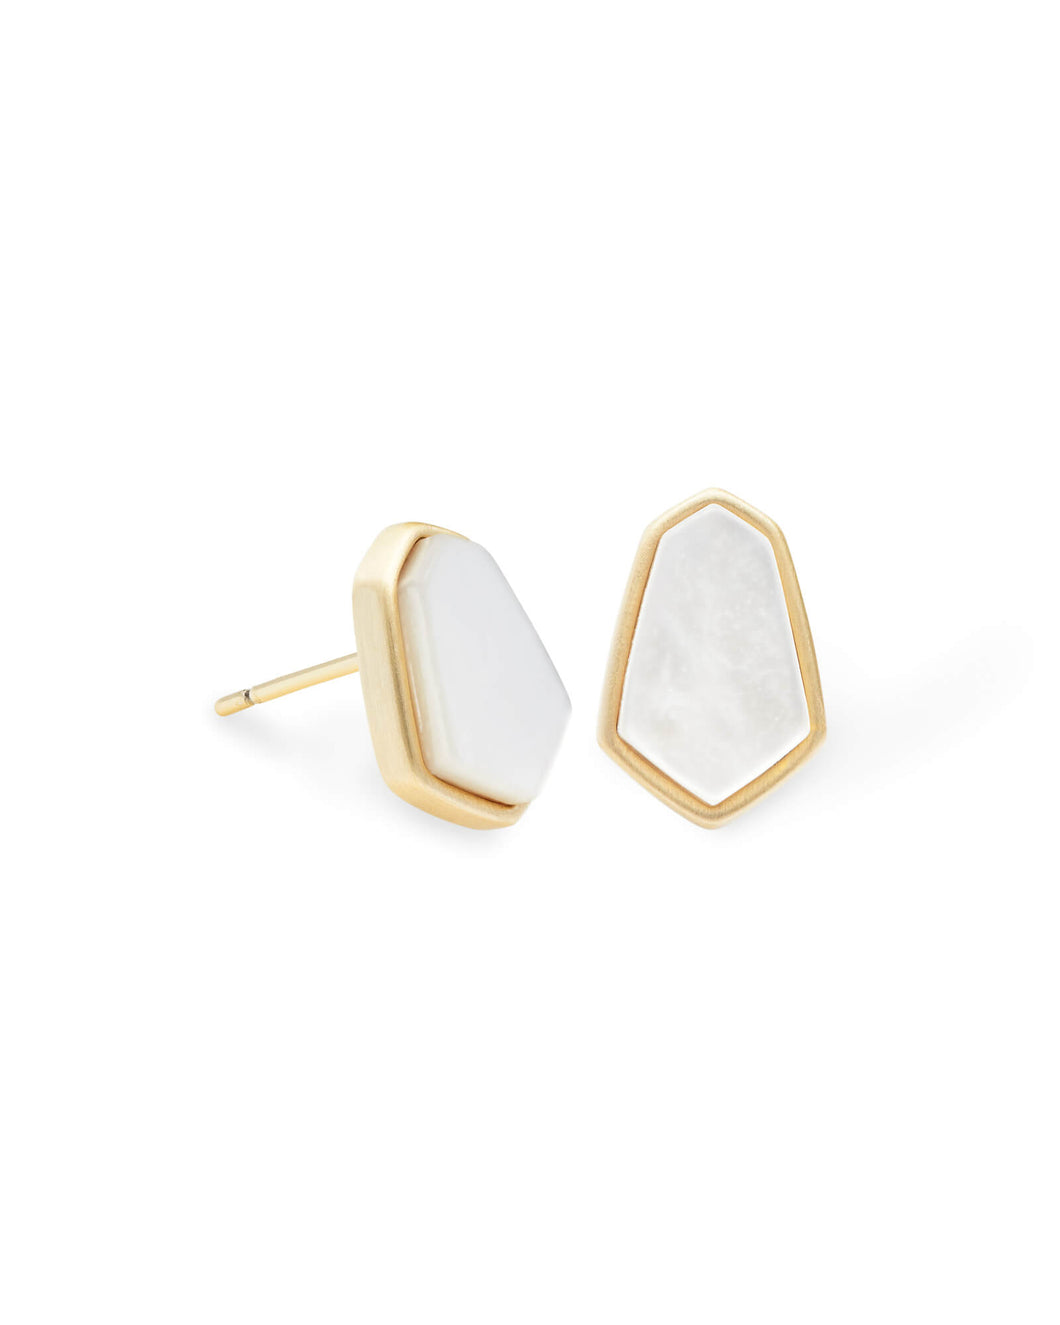 Clove Gold Stud Earrings In Ivory Pearl